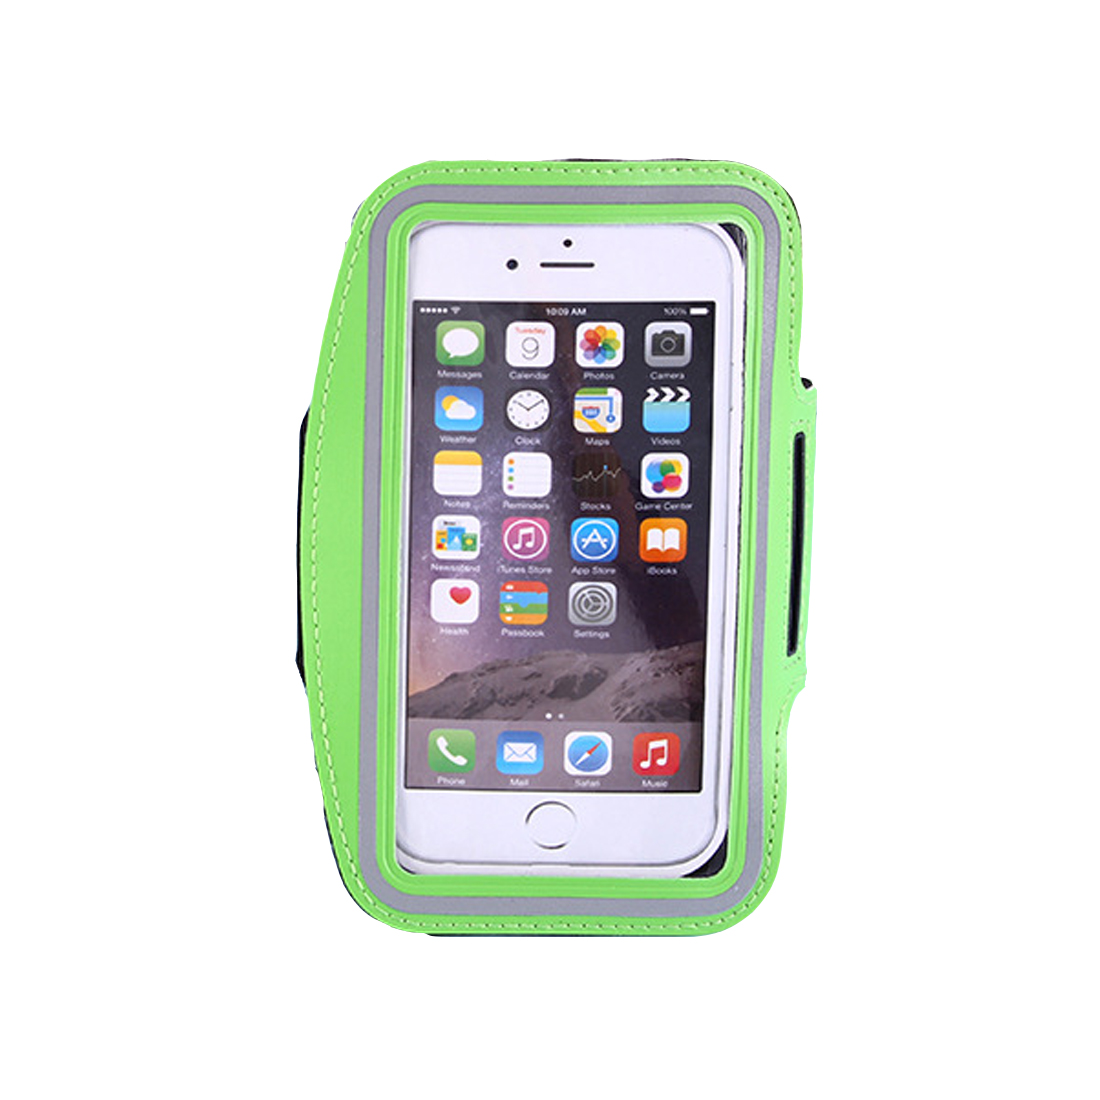 Hot Sale Durable Running Jogging Sports Gym Arm Band Strap Case Cover For Iphone 7 6 6s 6 Plus 5 5s 5c Se Waterproof Phone Bag Case Lustrous